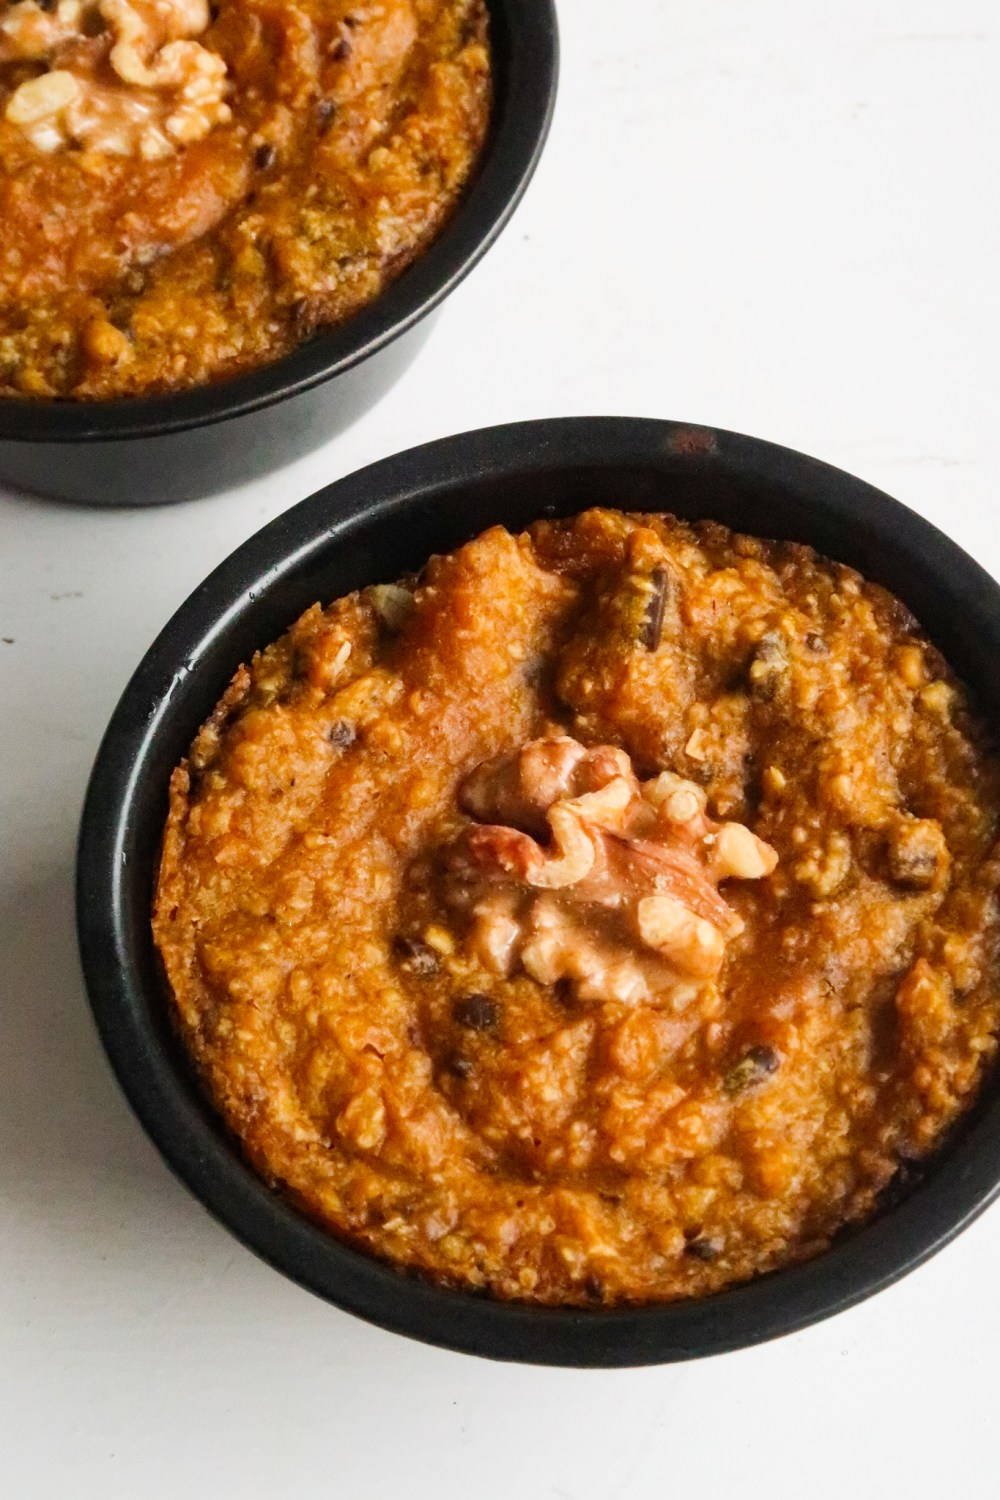 Need an effortless healthy vegan breakfast idea? These easy vegan pumpkin baked oats are delicious and can bake themselves while you're getting ready in the morning!